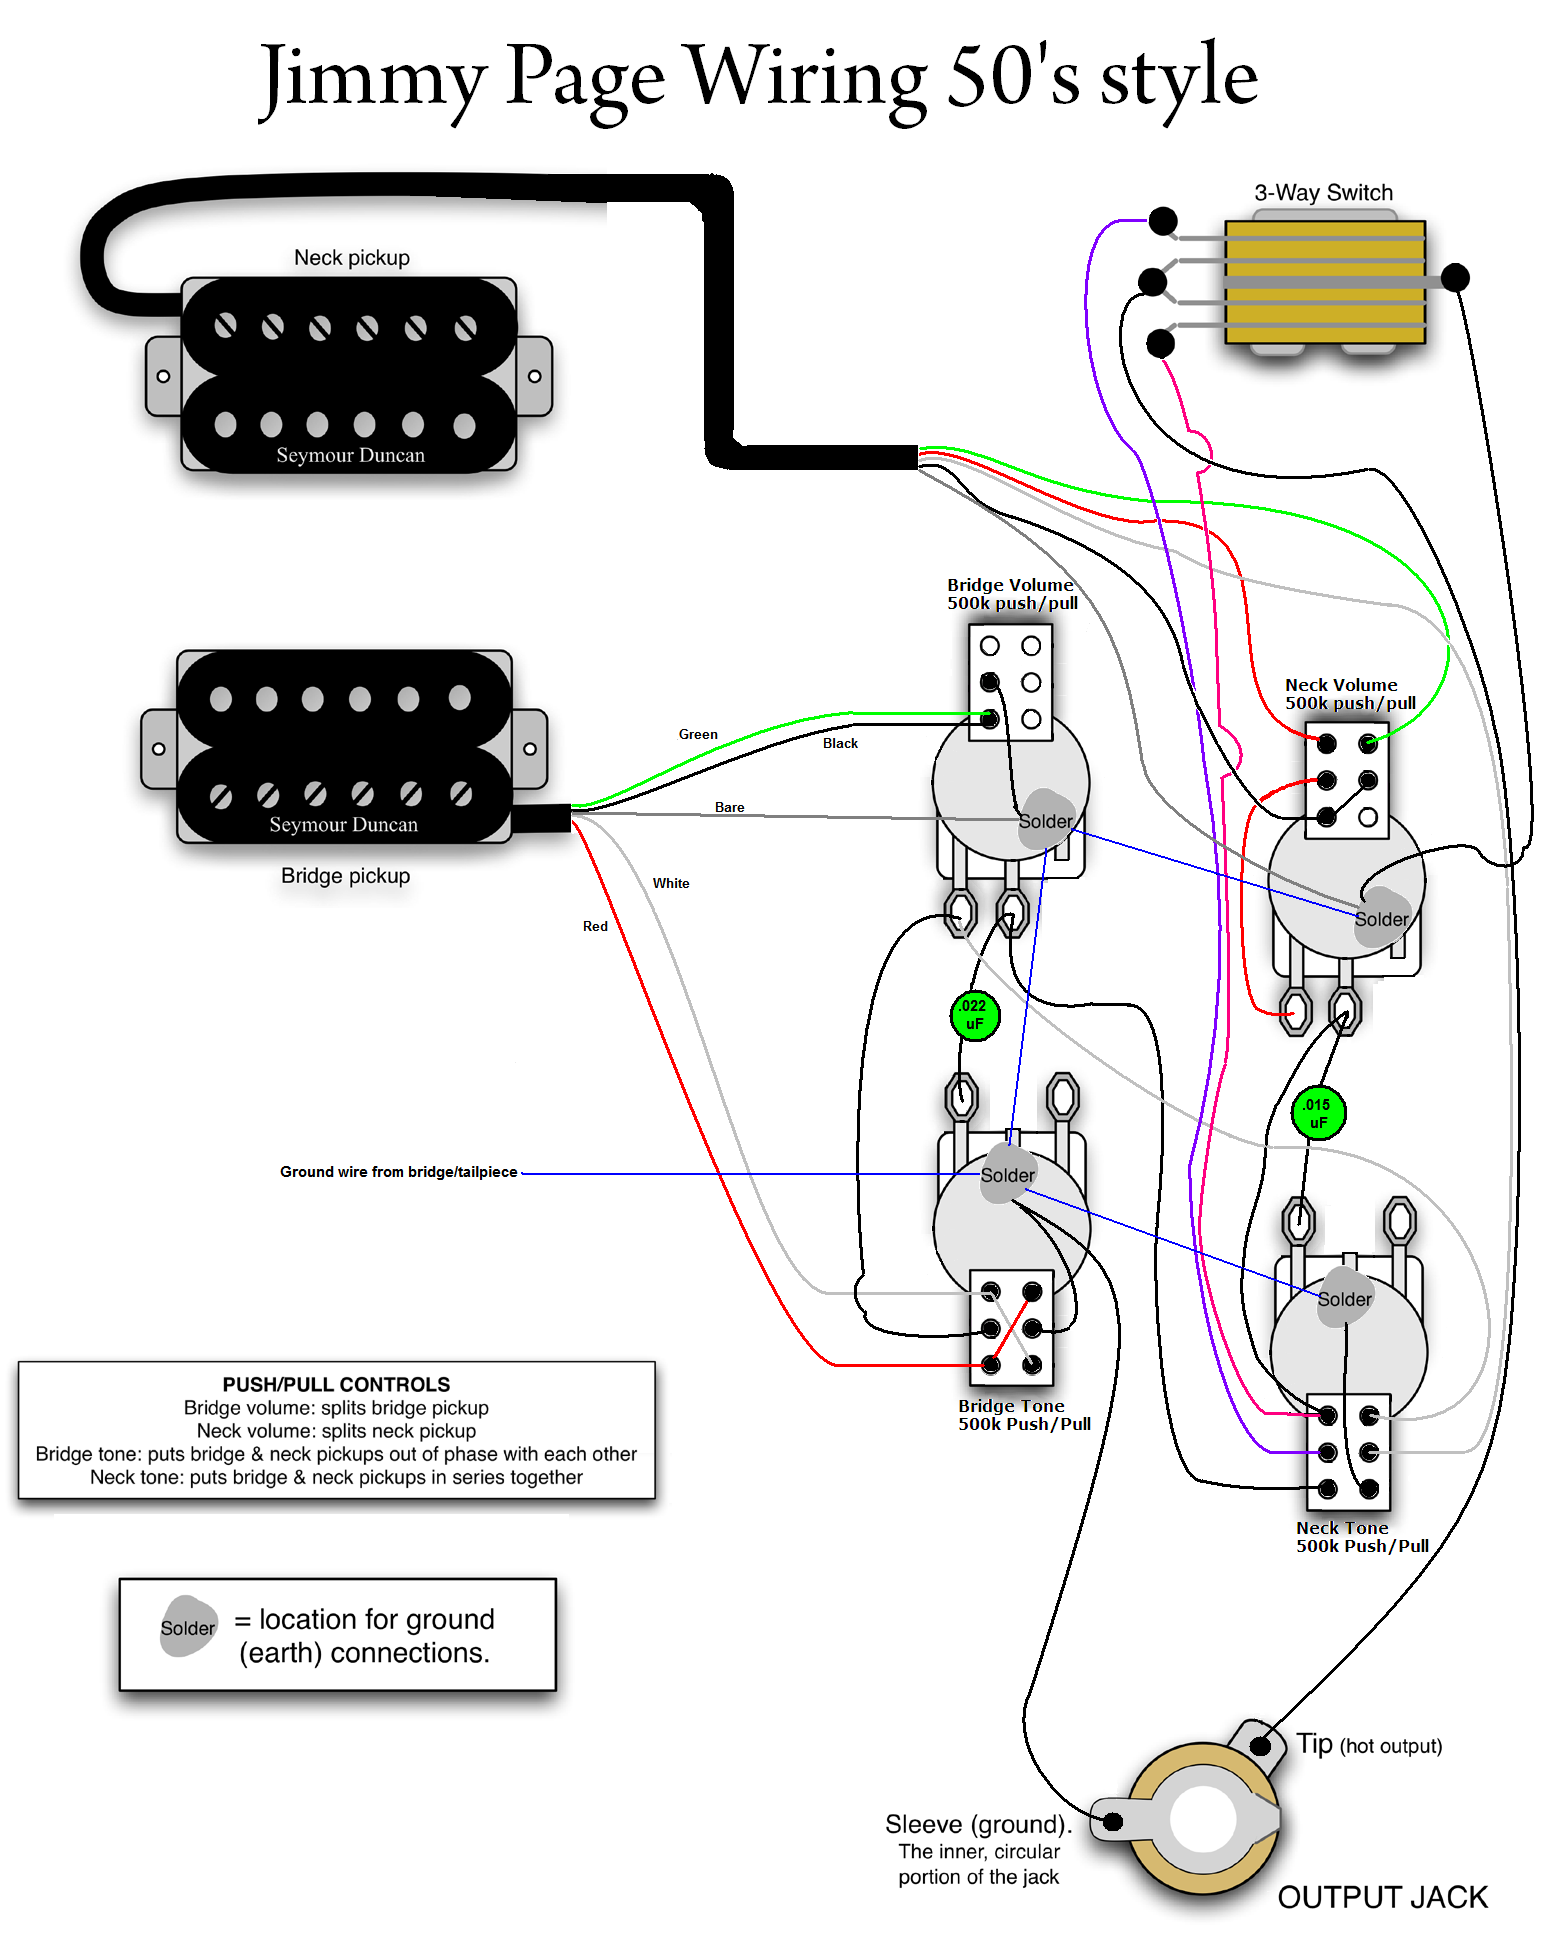 hight resolution of jimmy page 50s wiring mylespaul com instruments in 2019 guitar gibson jimmy page wiring diagram